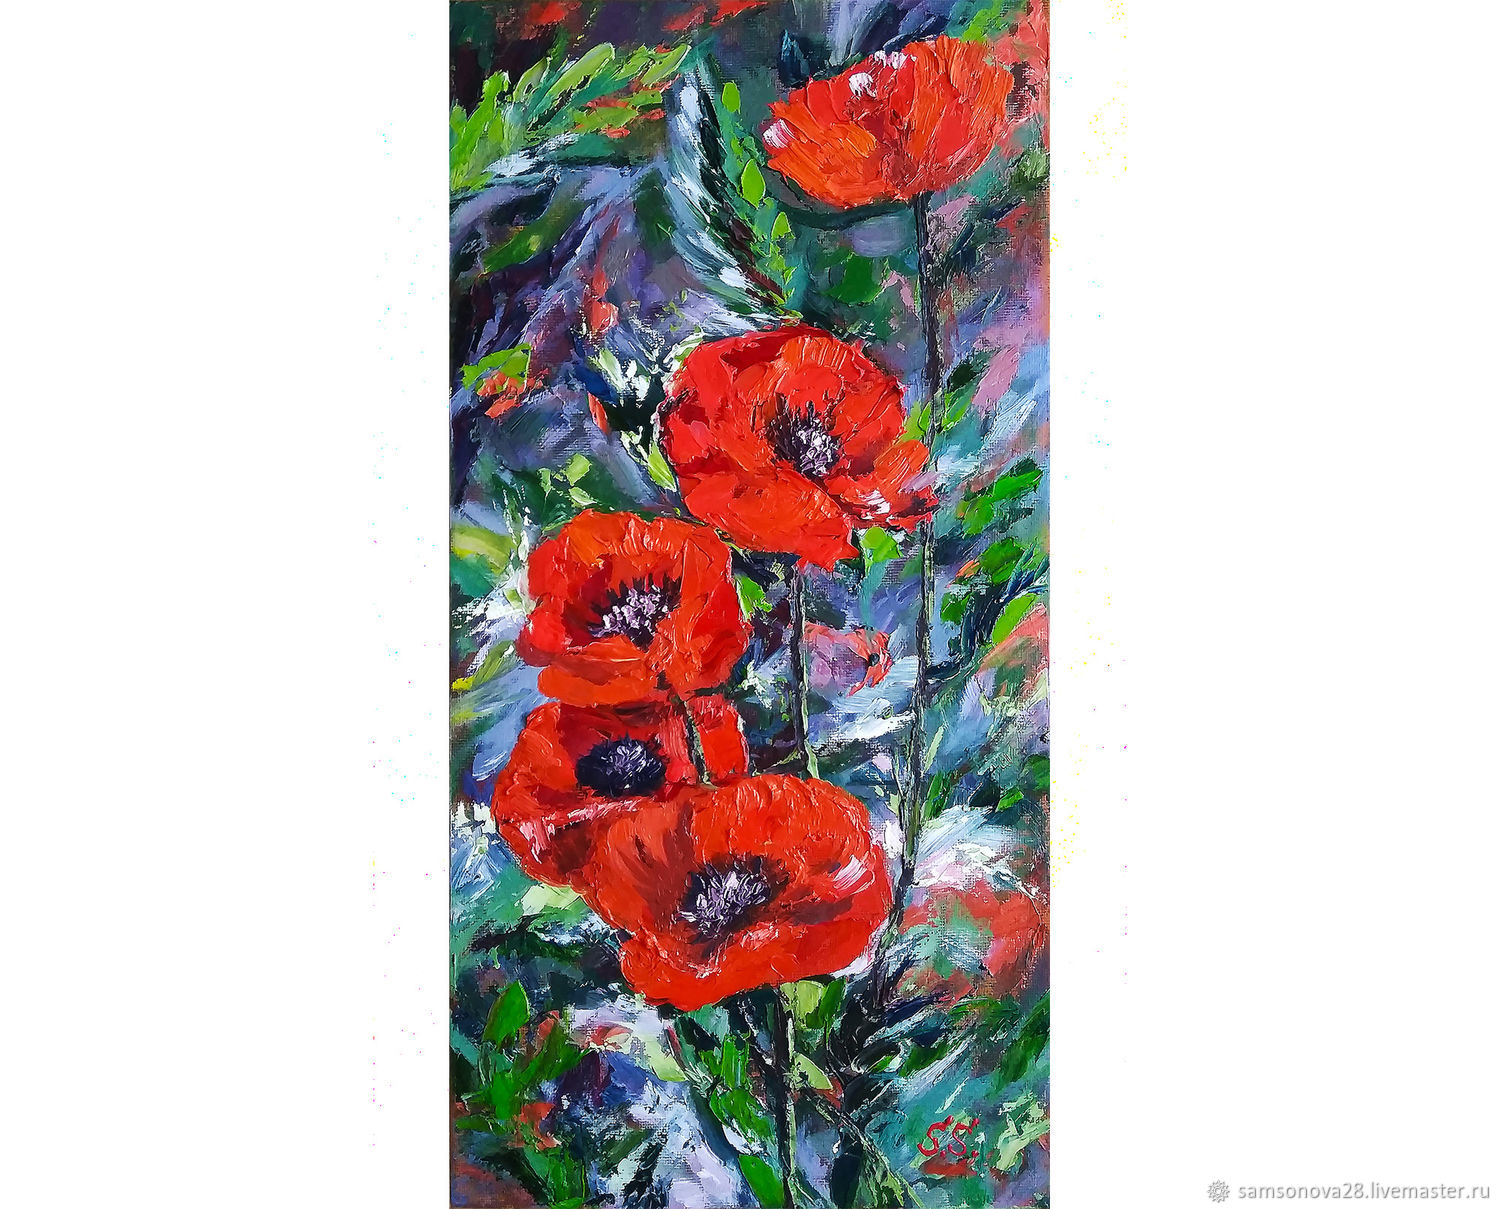 Painting with poppies 'Scarlet poppies' on canvas, Pictures, Samara,  Фото №1